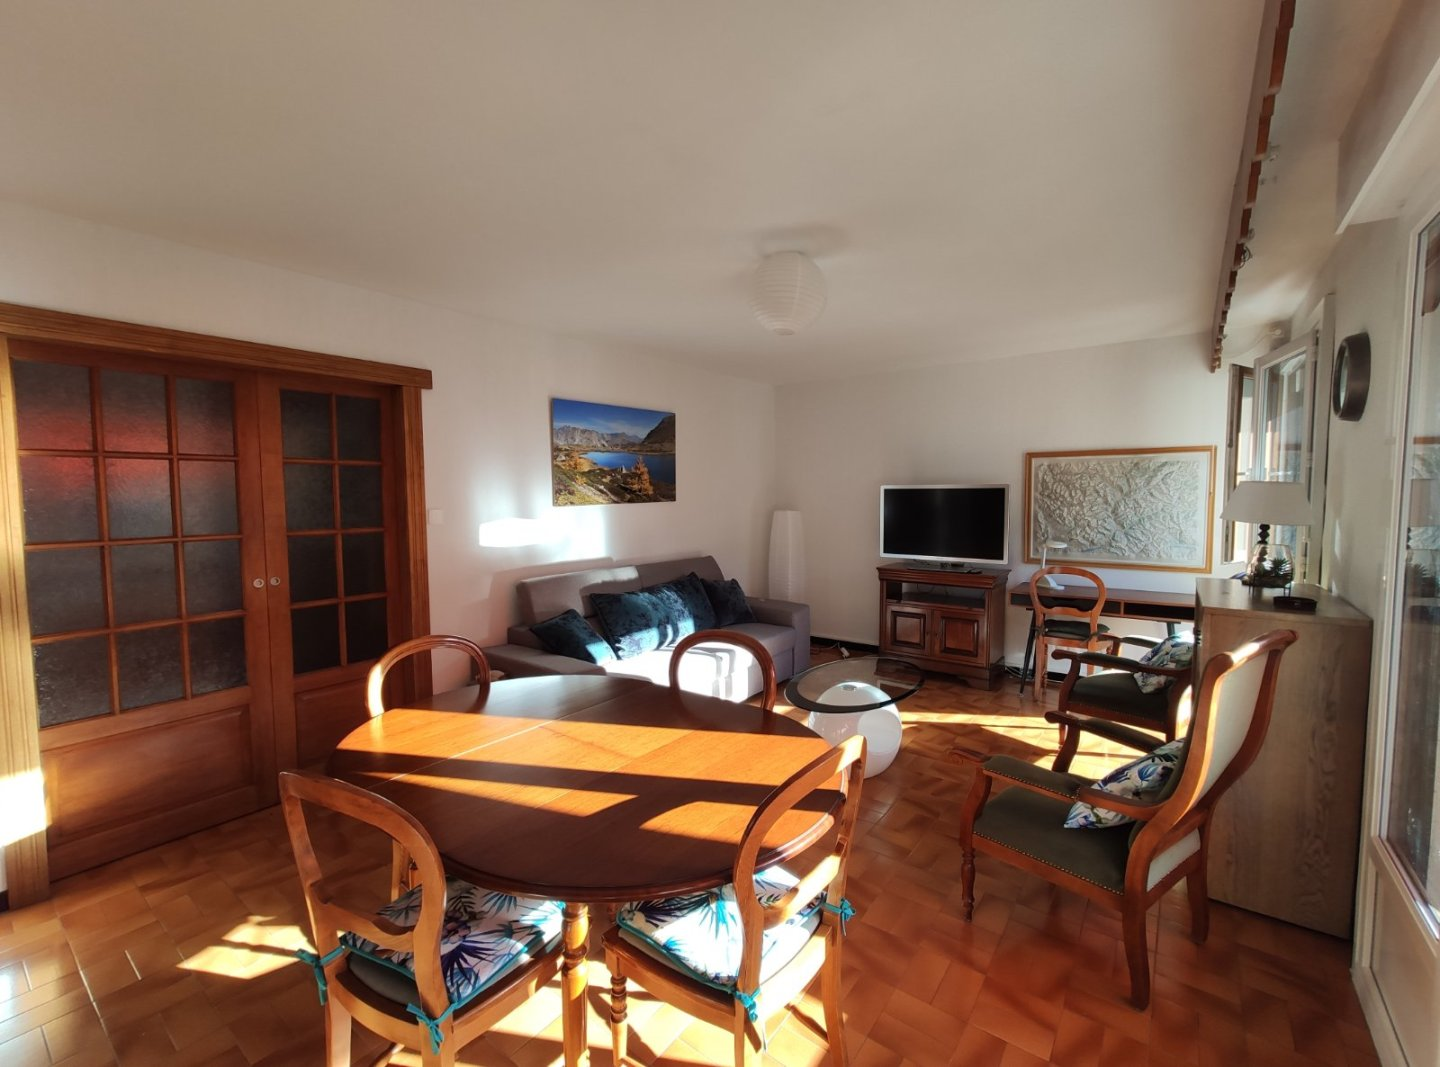 APARTMENT 3 ROOMS FOR SALE - BRIANCON - 71 m2 - 195 000 €